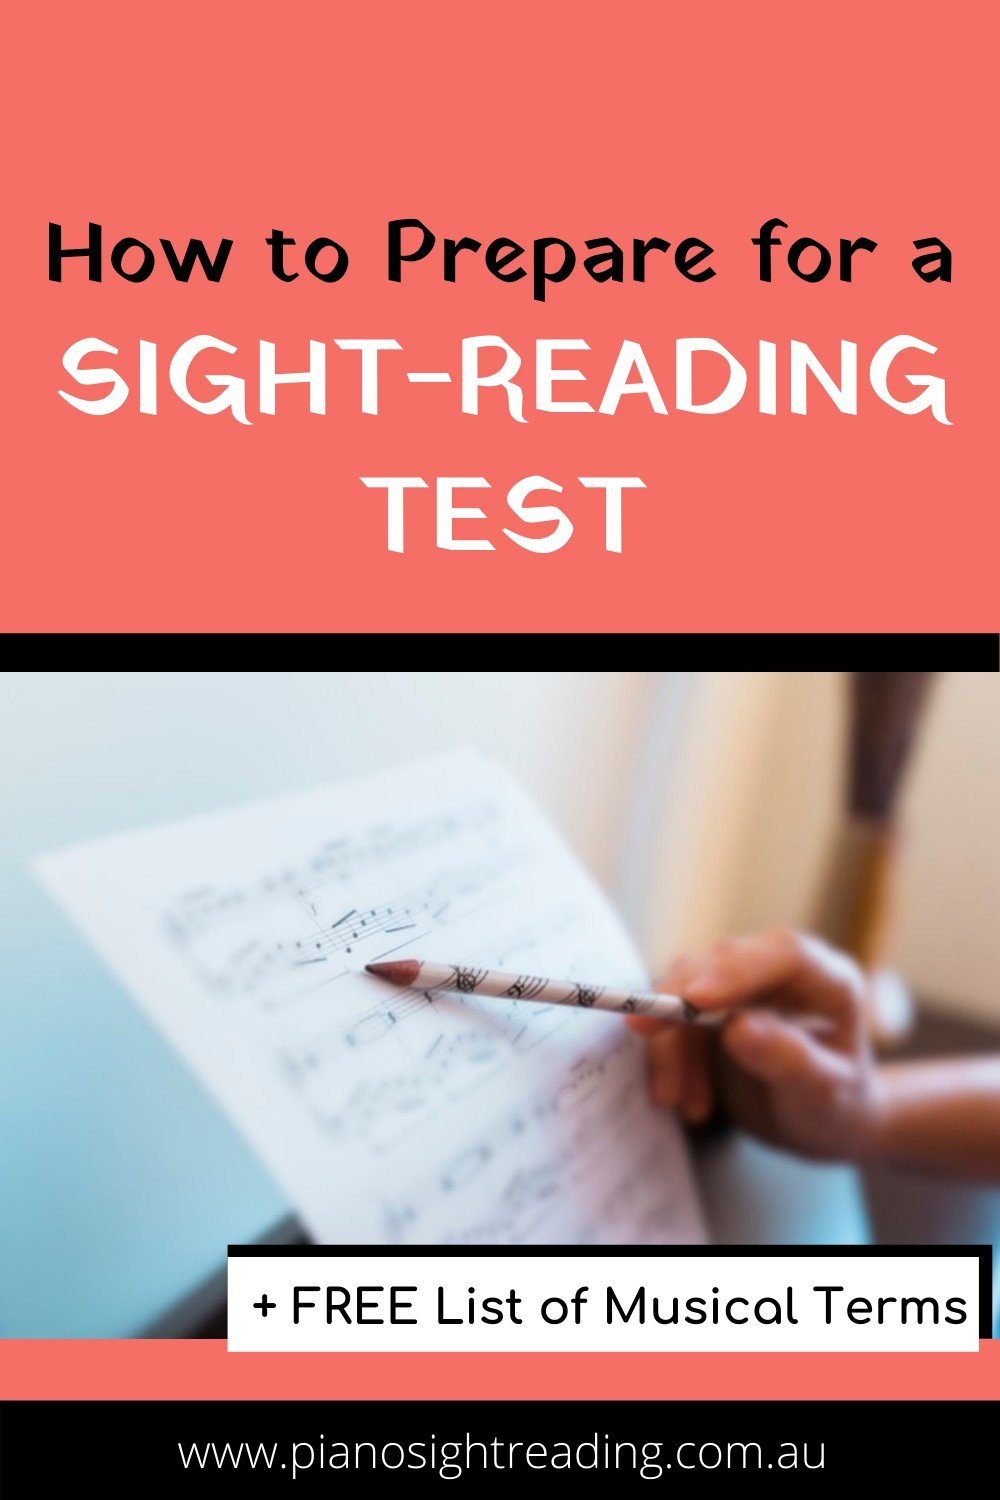 preparing for a sight-reading test